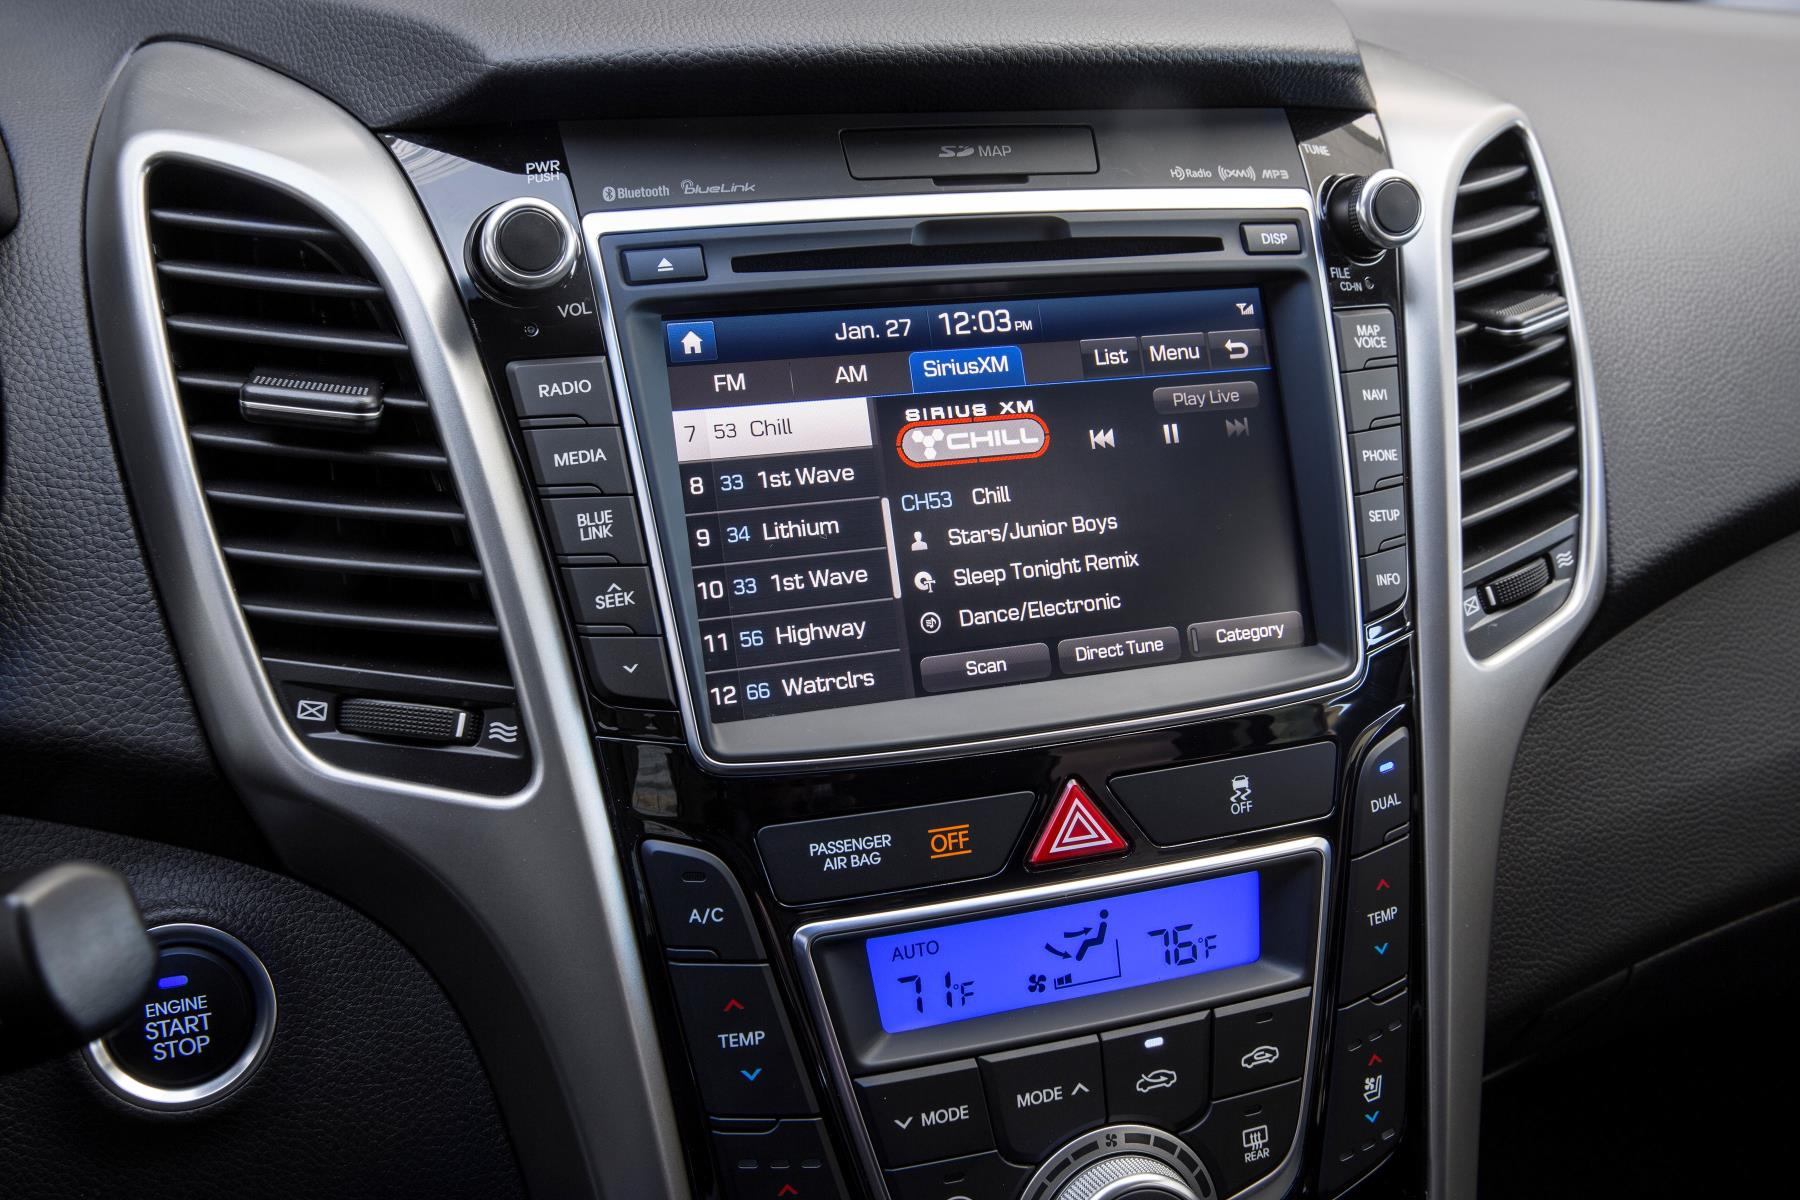 2017 Hyundai Elantra Gt Adds Apple Carplay And Android